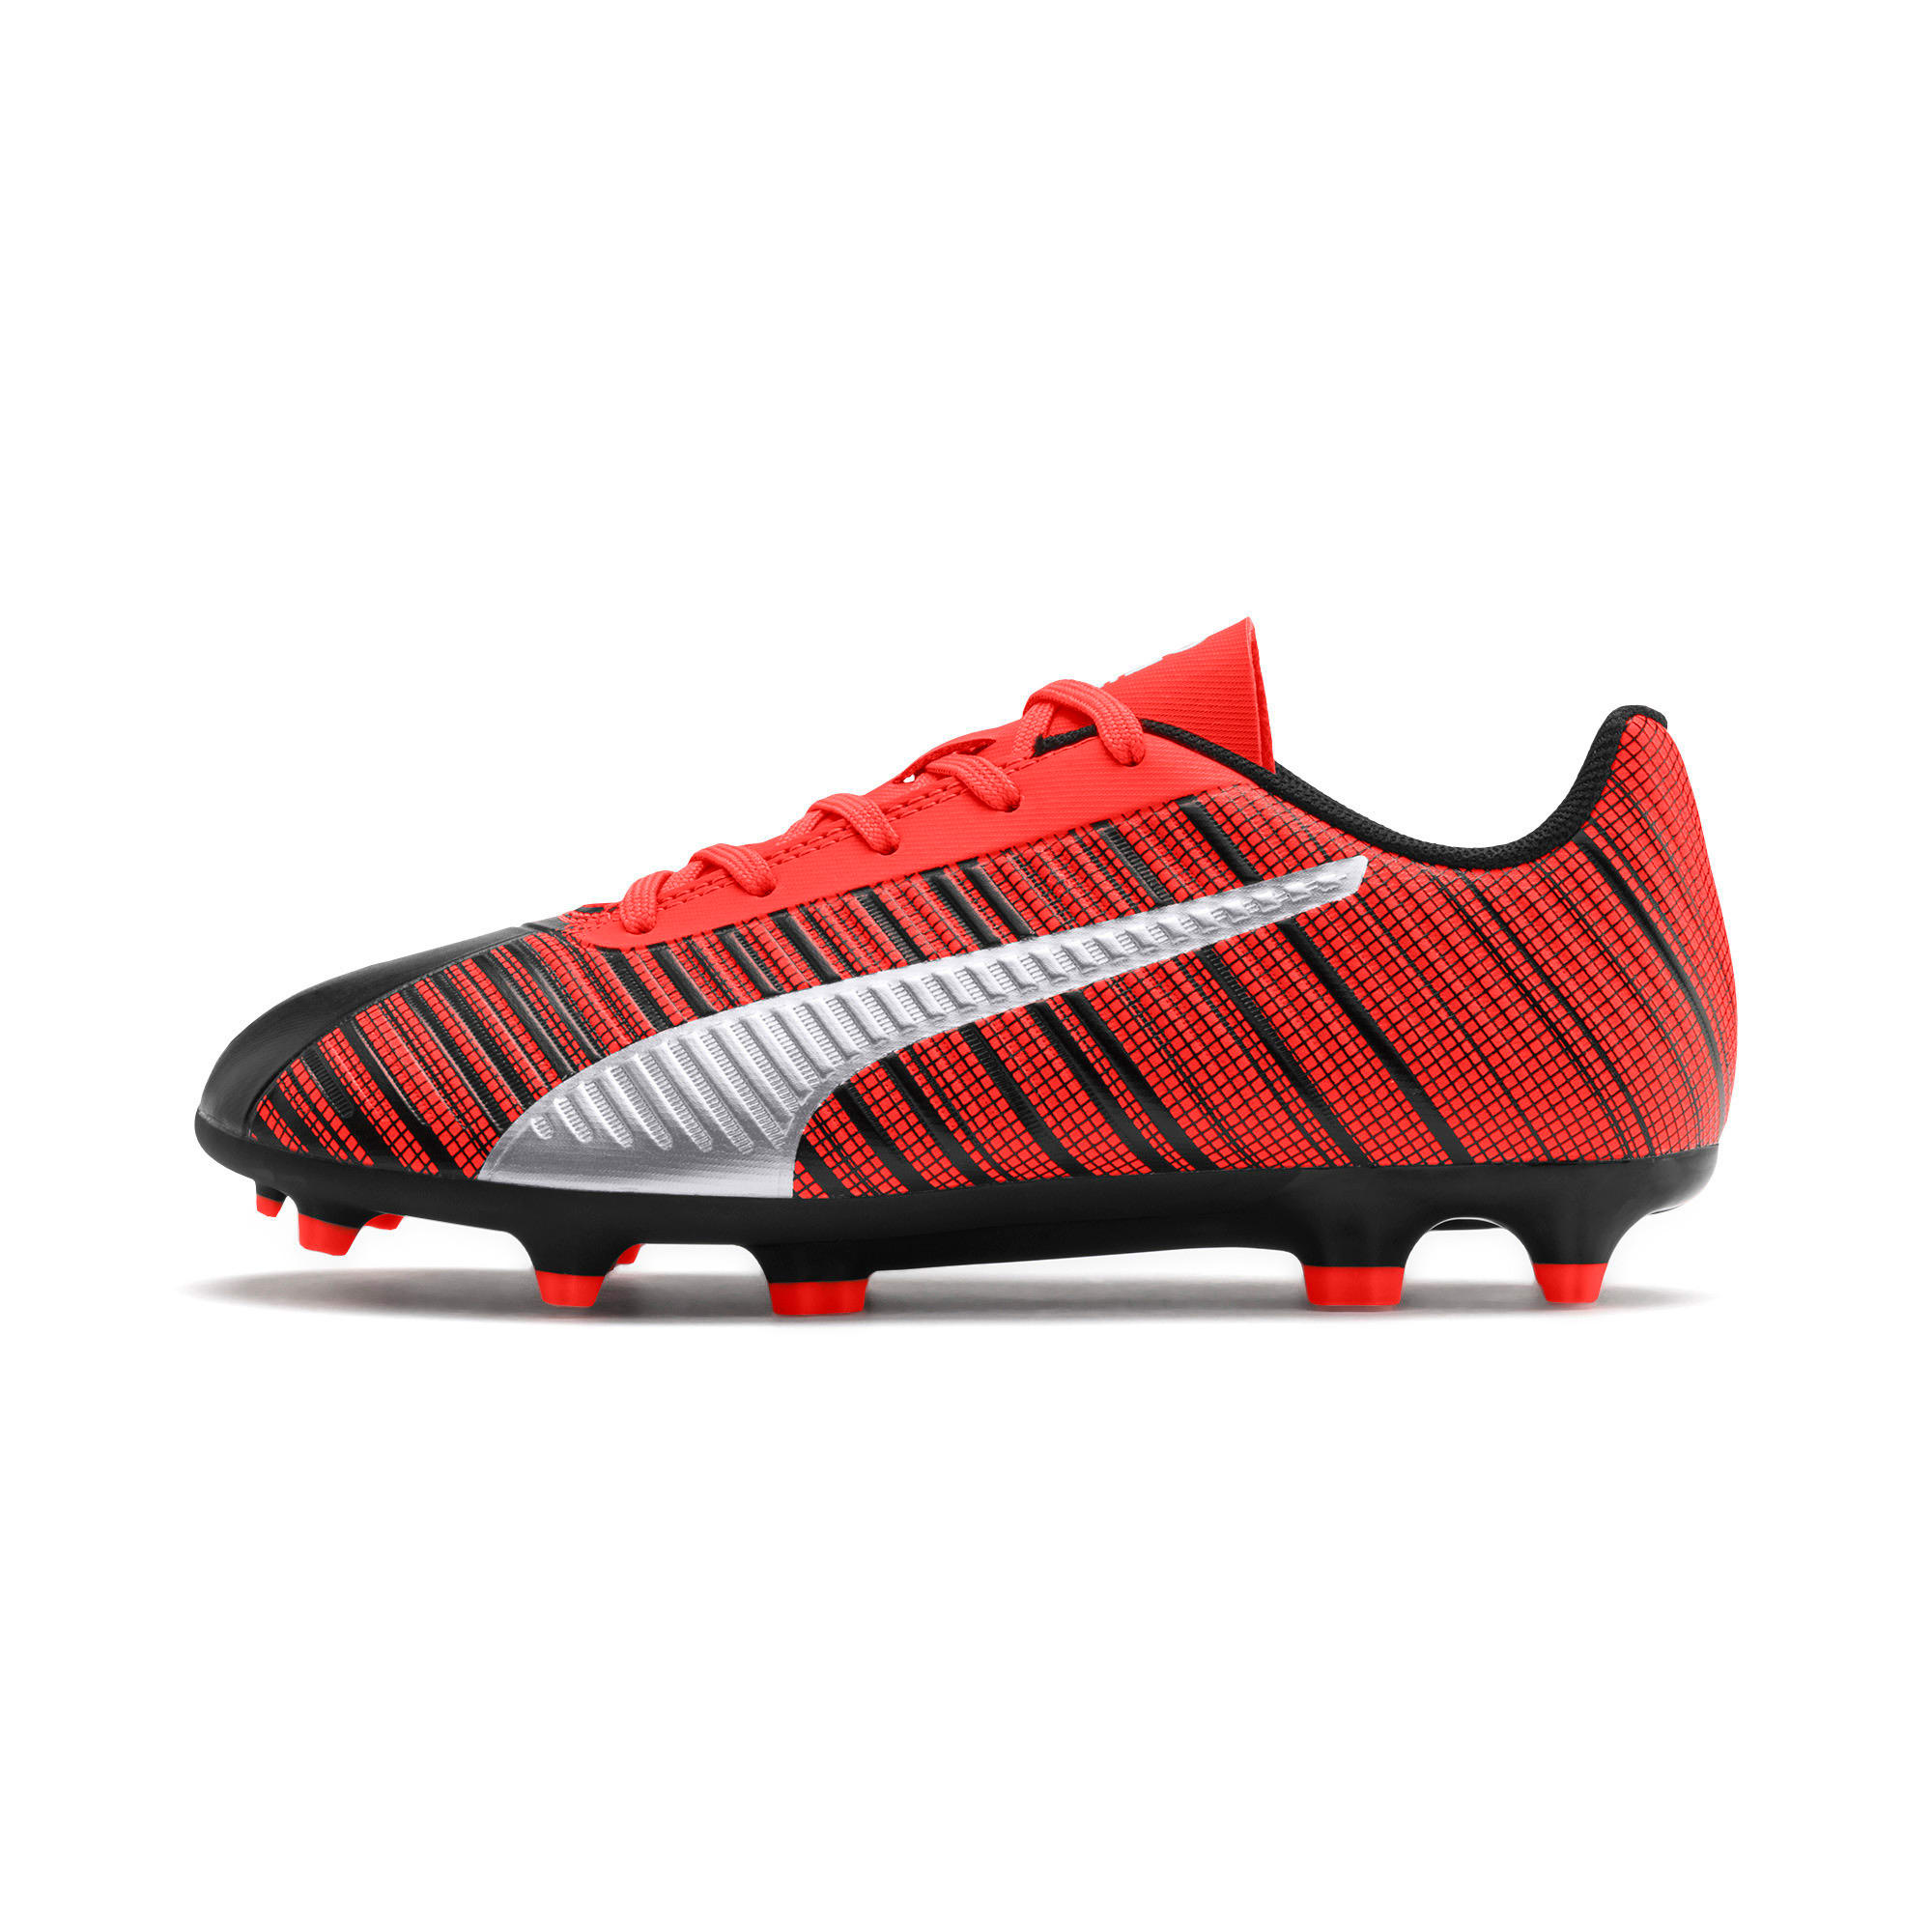 Thumbnail 1 of PUMA ONE 5.4 IT Youth Football Boots, Black-Nrgy Red-Aged Silver, medium-IND